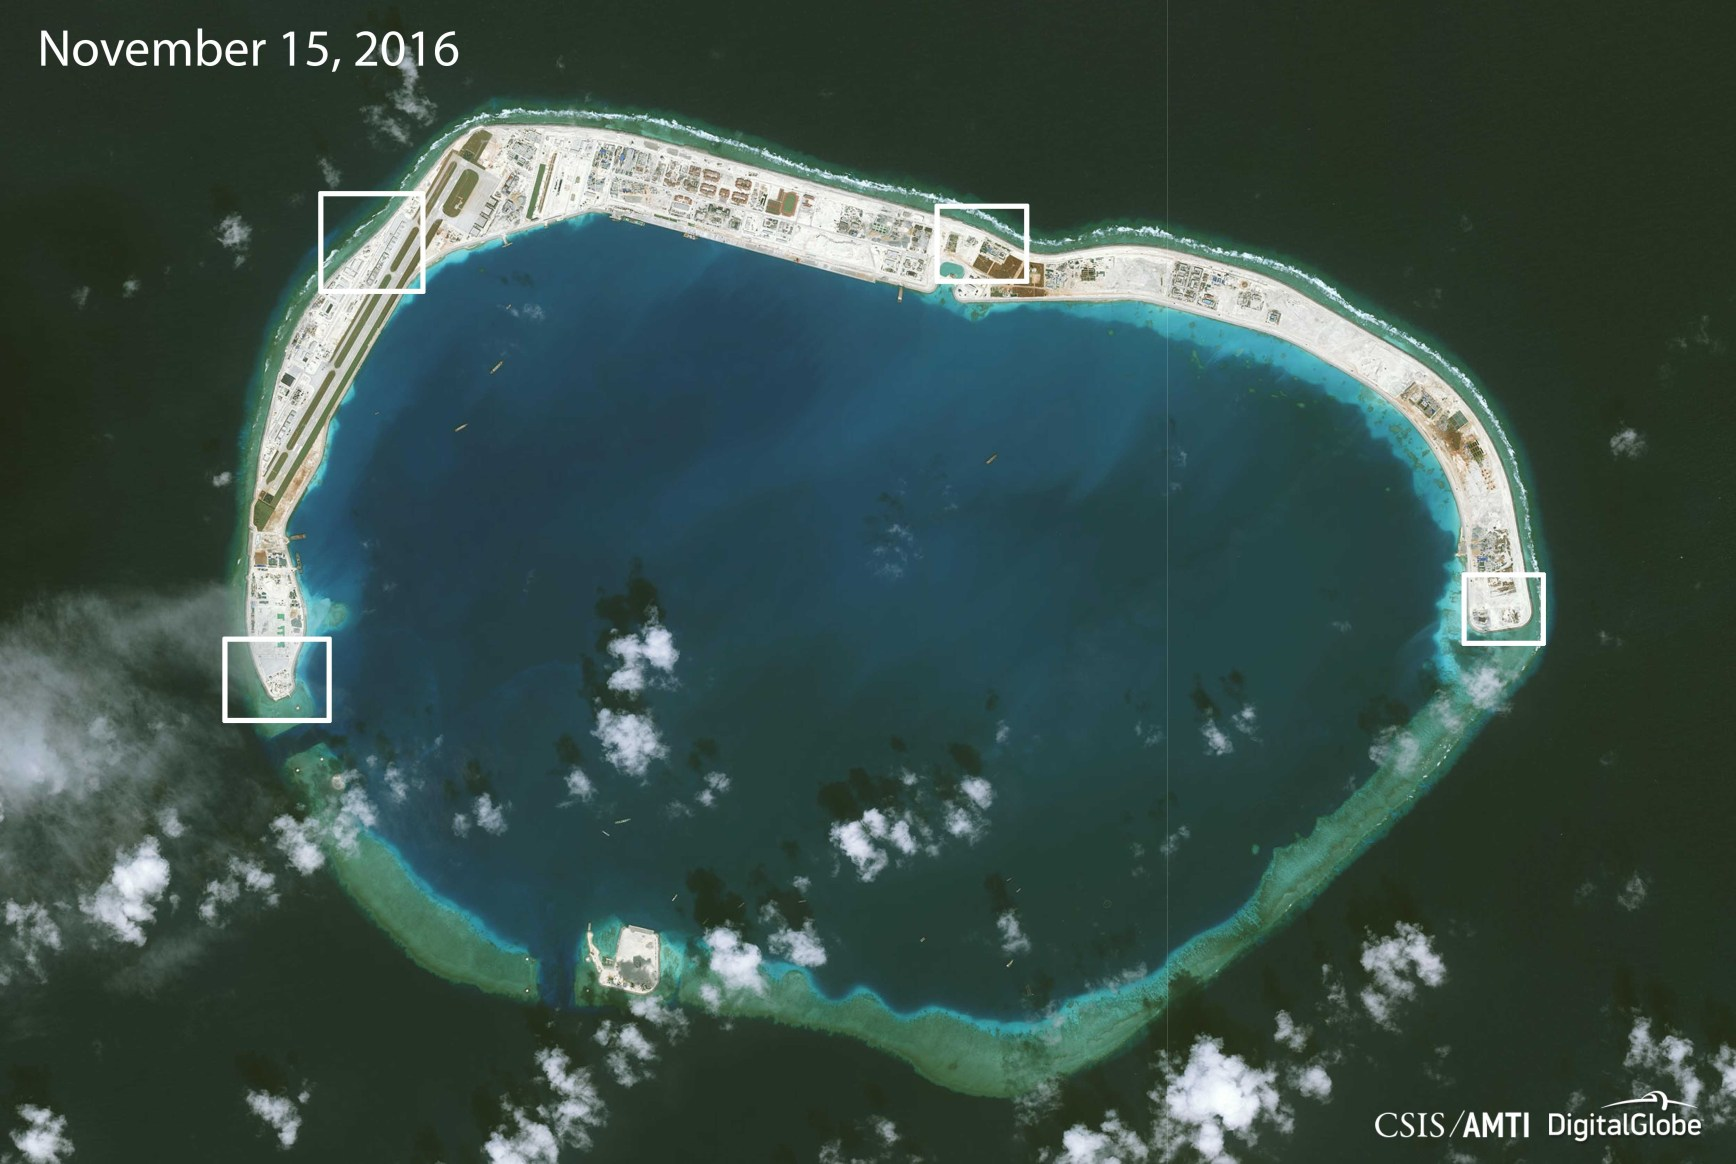 MISCHIEF REEF. Structures seen on a satellite image of Mischief Reef in the disputed South China Sea on November 15, 2016, released December 13, 2016. Image courtesy of CSIS Asia Maritime Transparency Initiative/DigitalGlobe